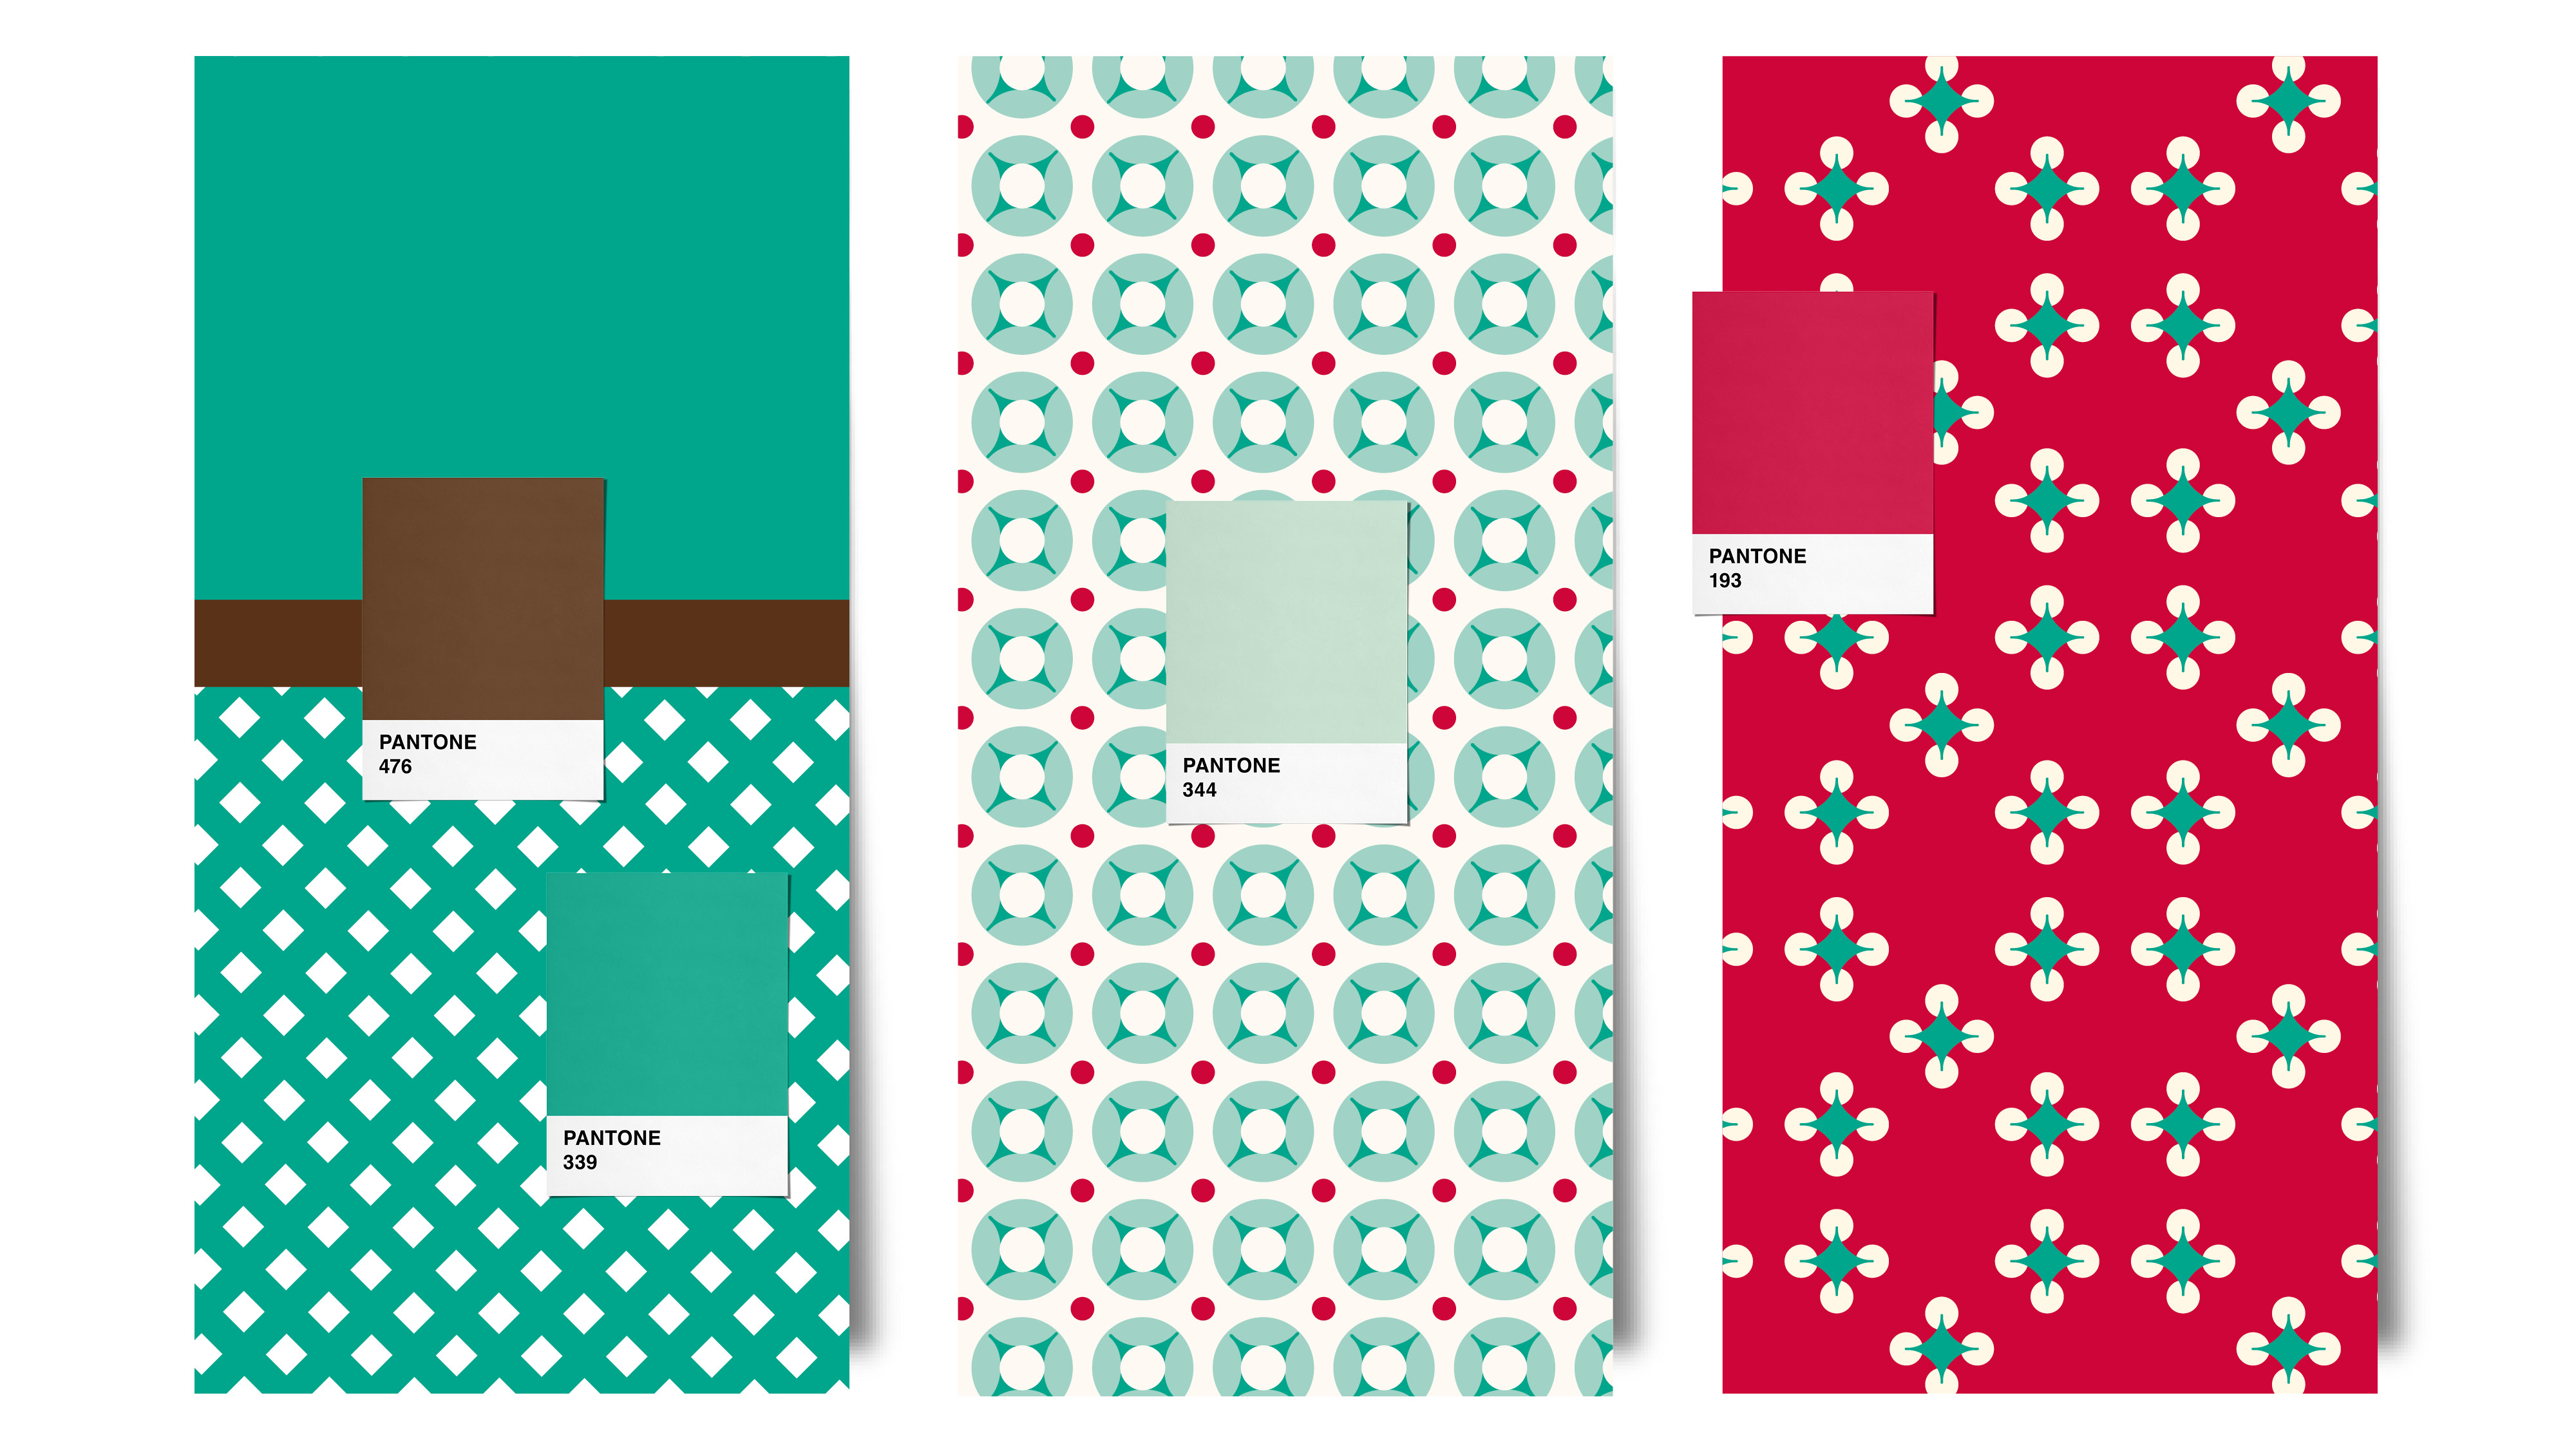 Pattern and colour for Fanny's Cupcakes